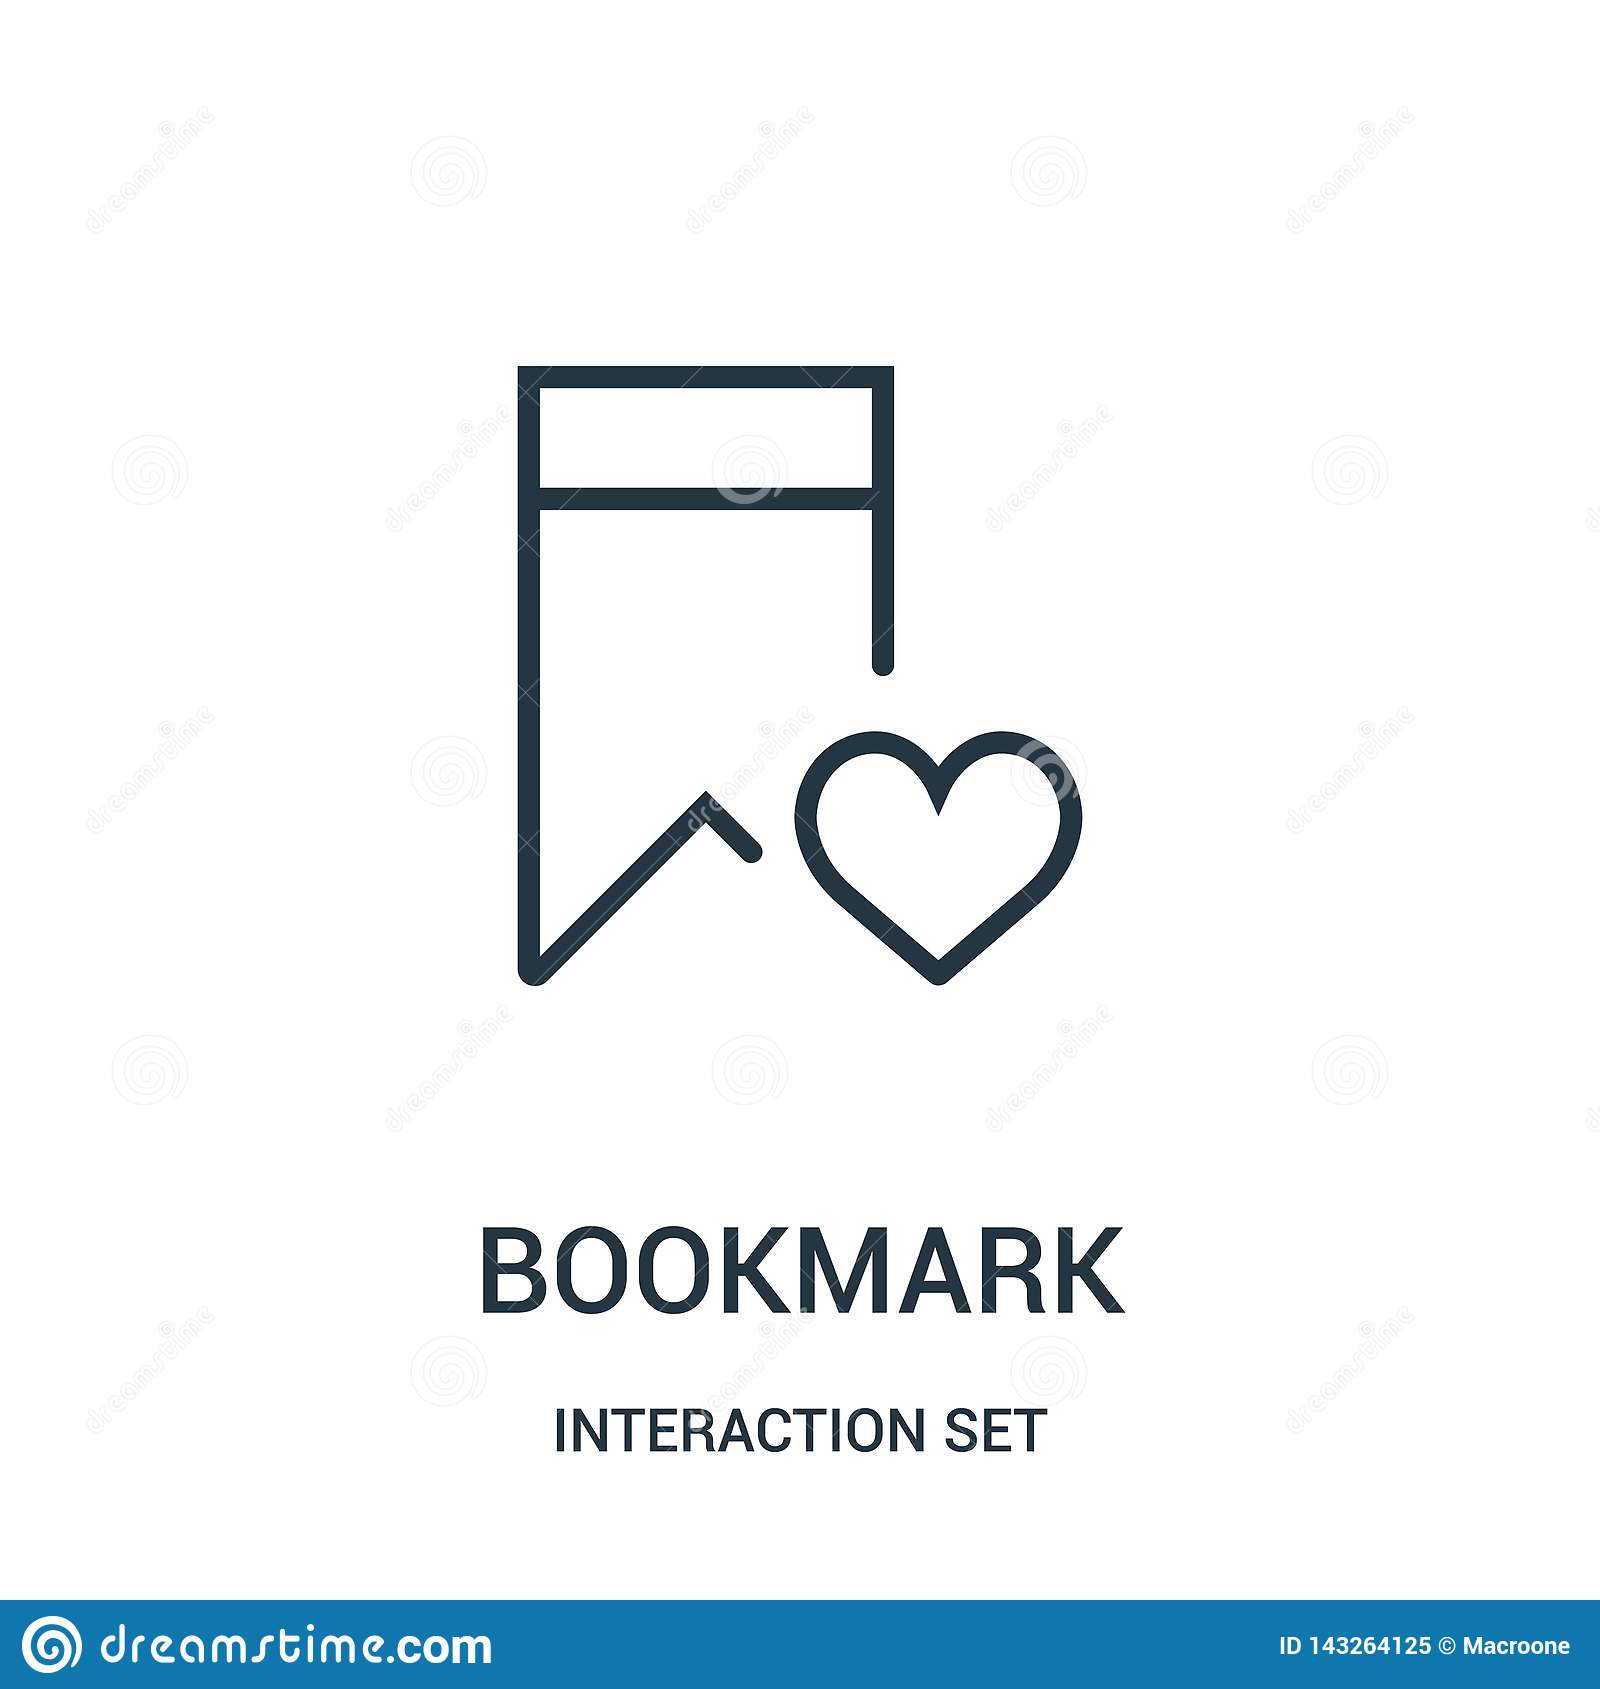 bookmark icon vector from interaction set collection. Thin line bookmark outline icon vector illustration